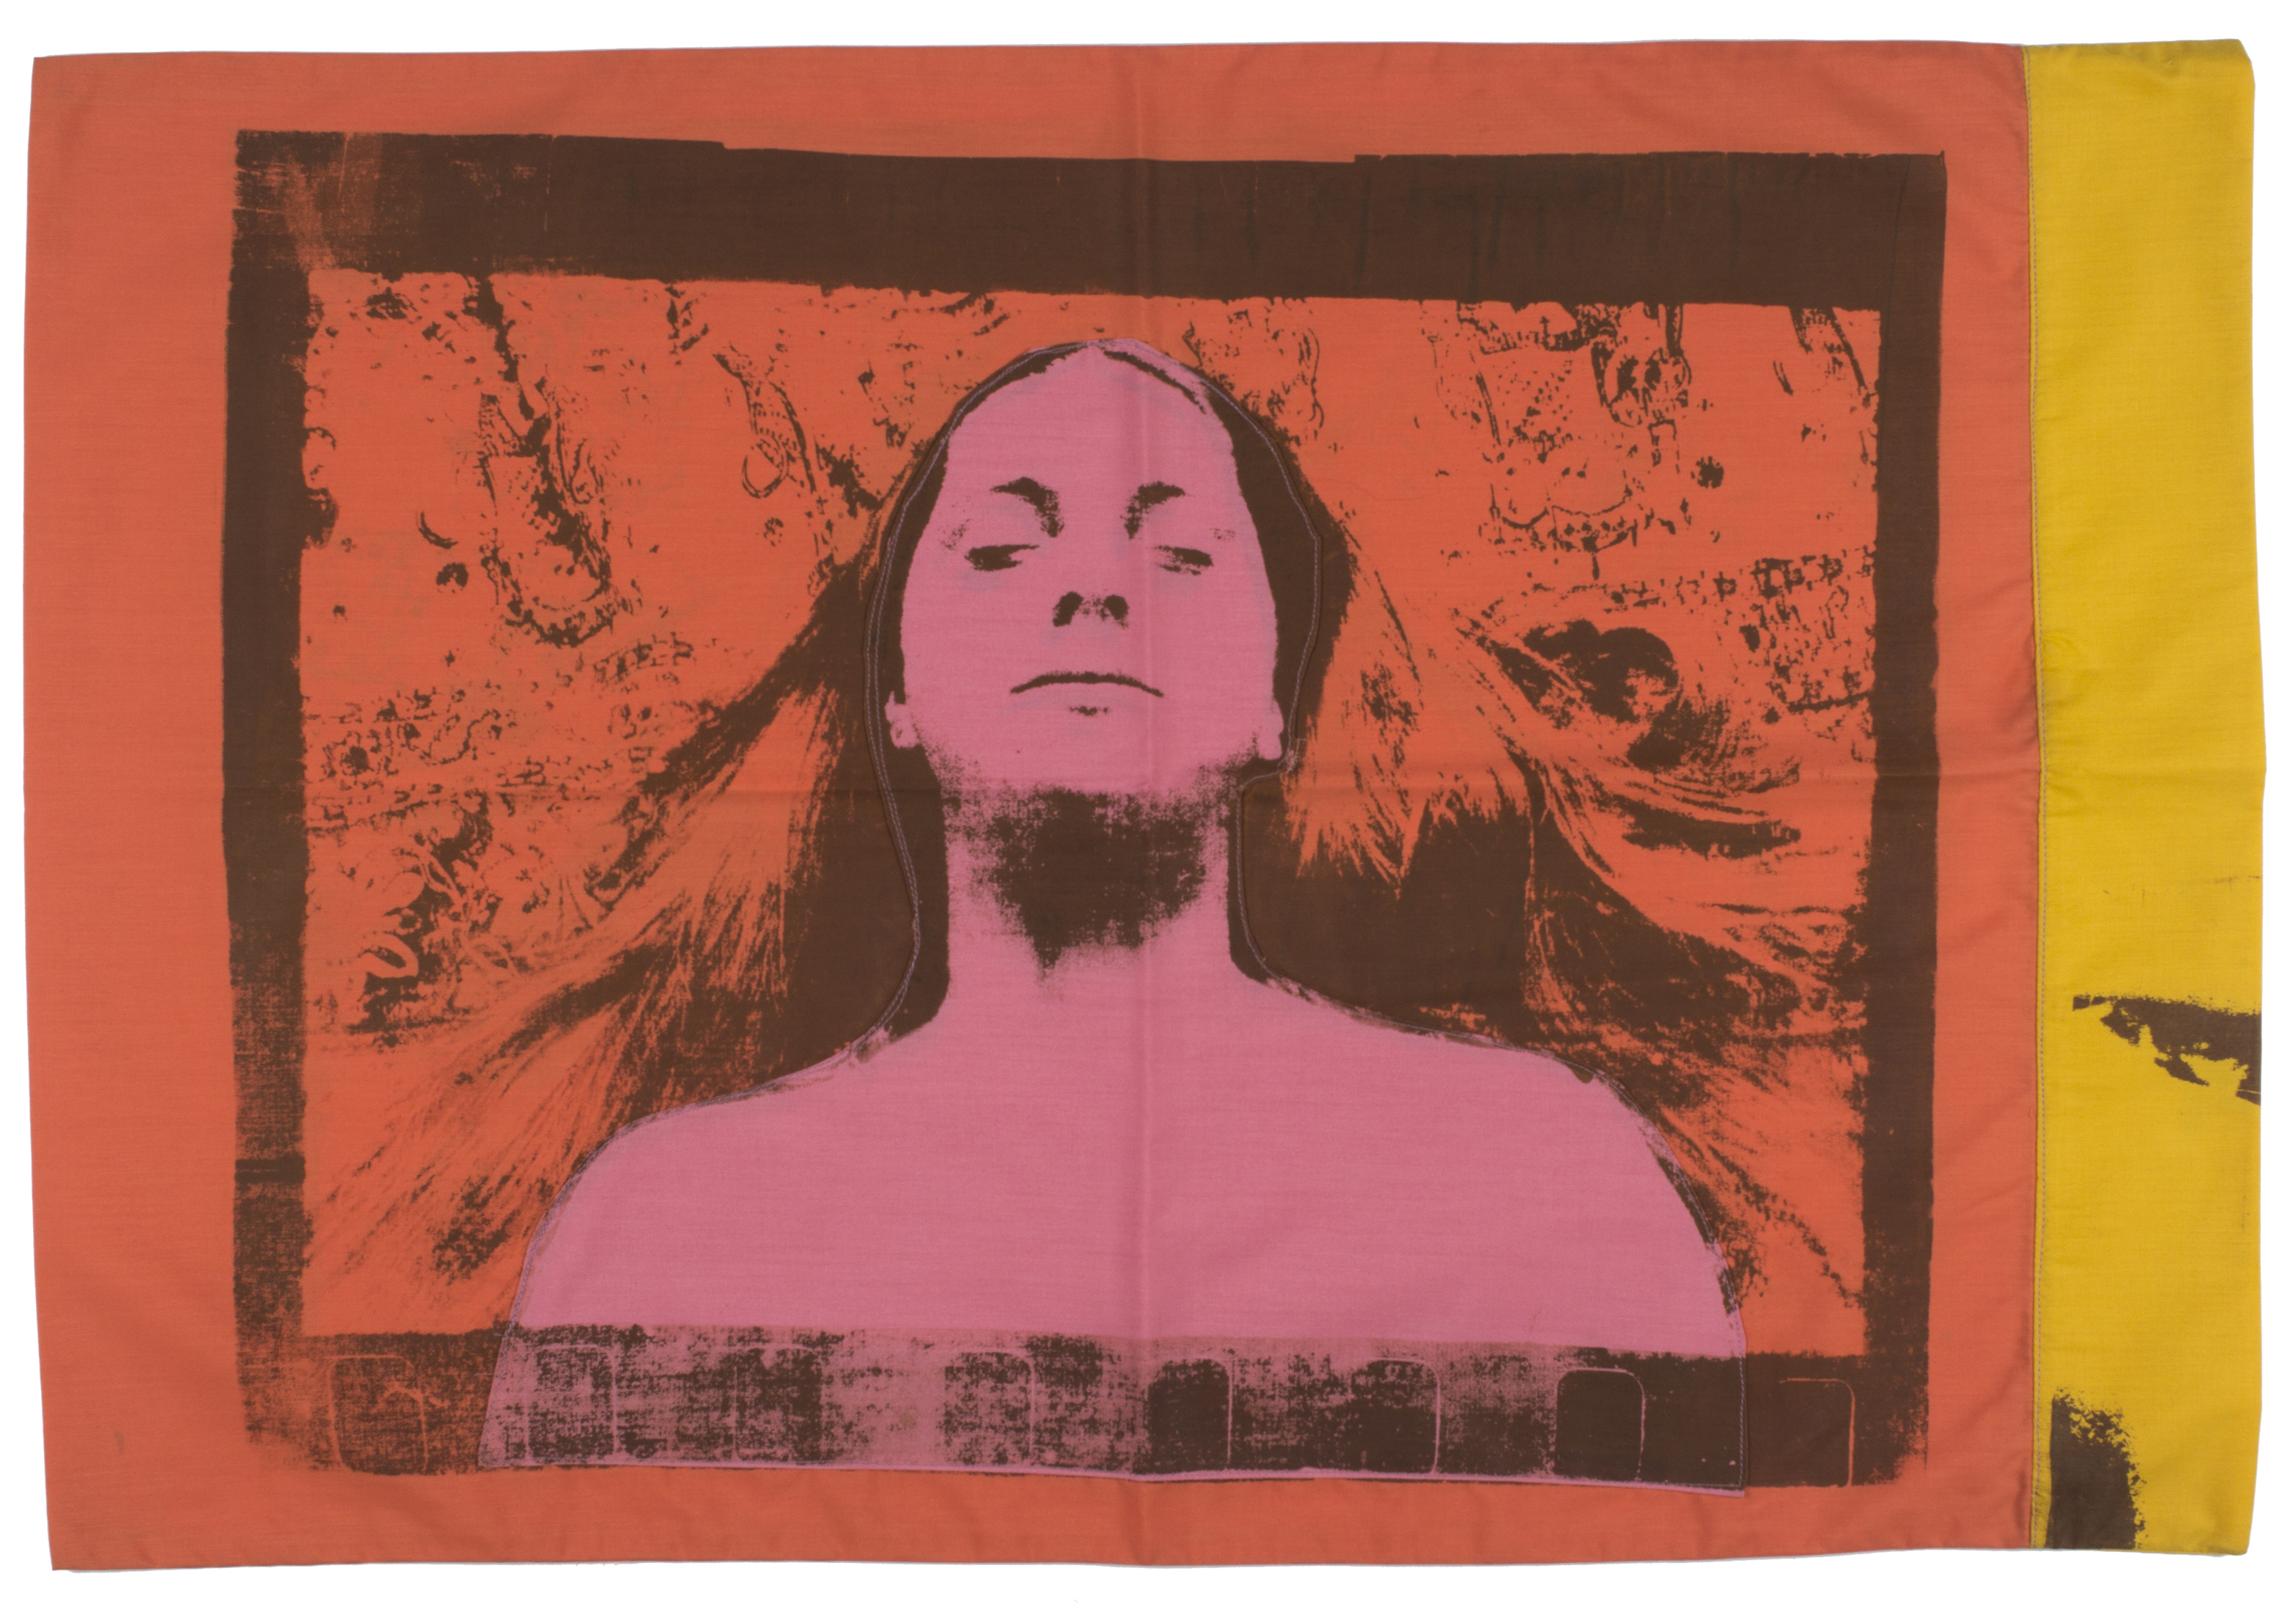 Joan Lyons Pillowcase, 1969 Silkscreen on pieced fabric 20h x 29 1/2w in Unique, Signed by artist on signature label - Courtesy Steven Kasher Gallery